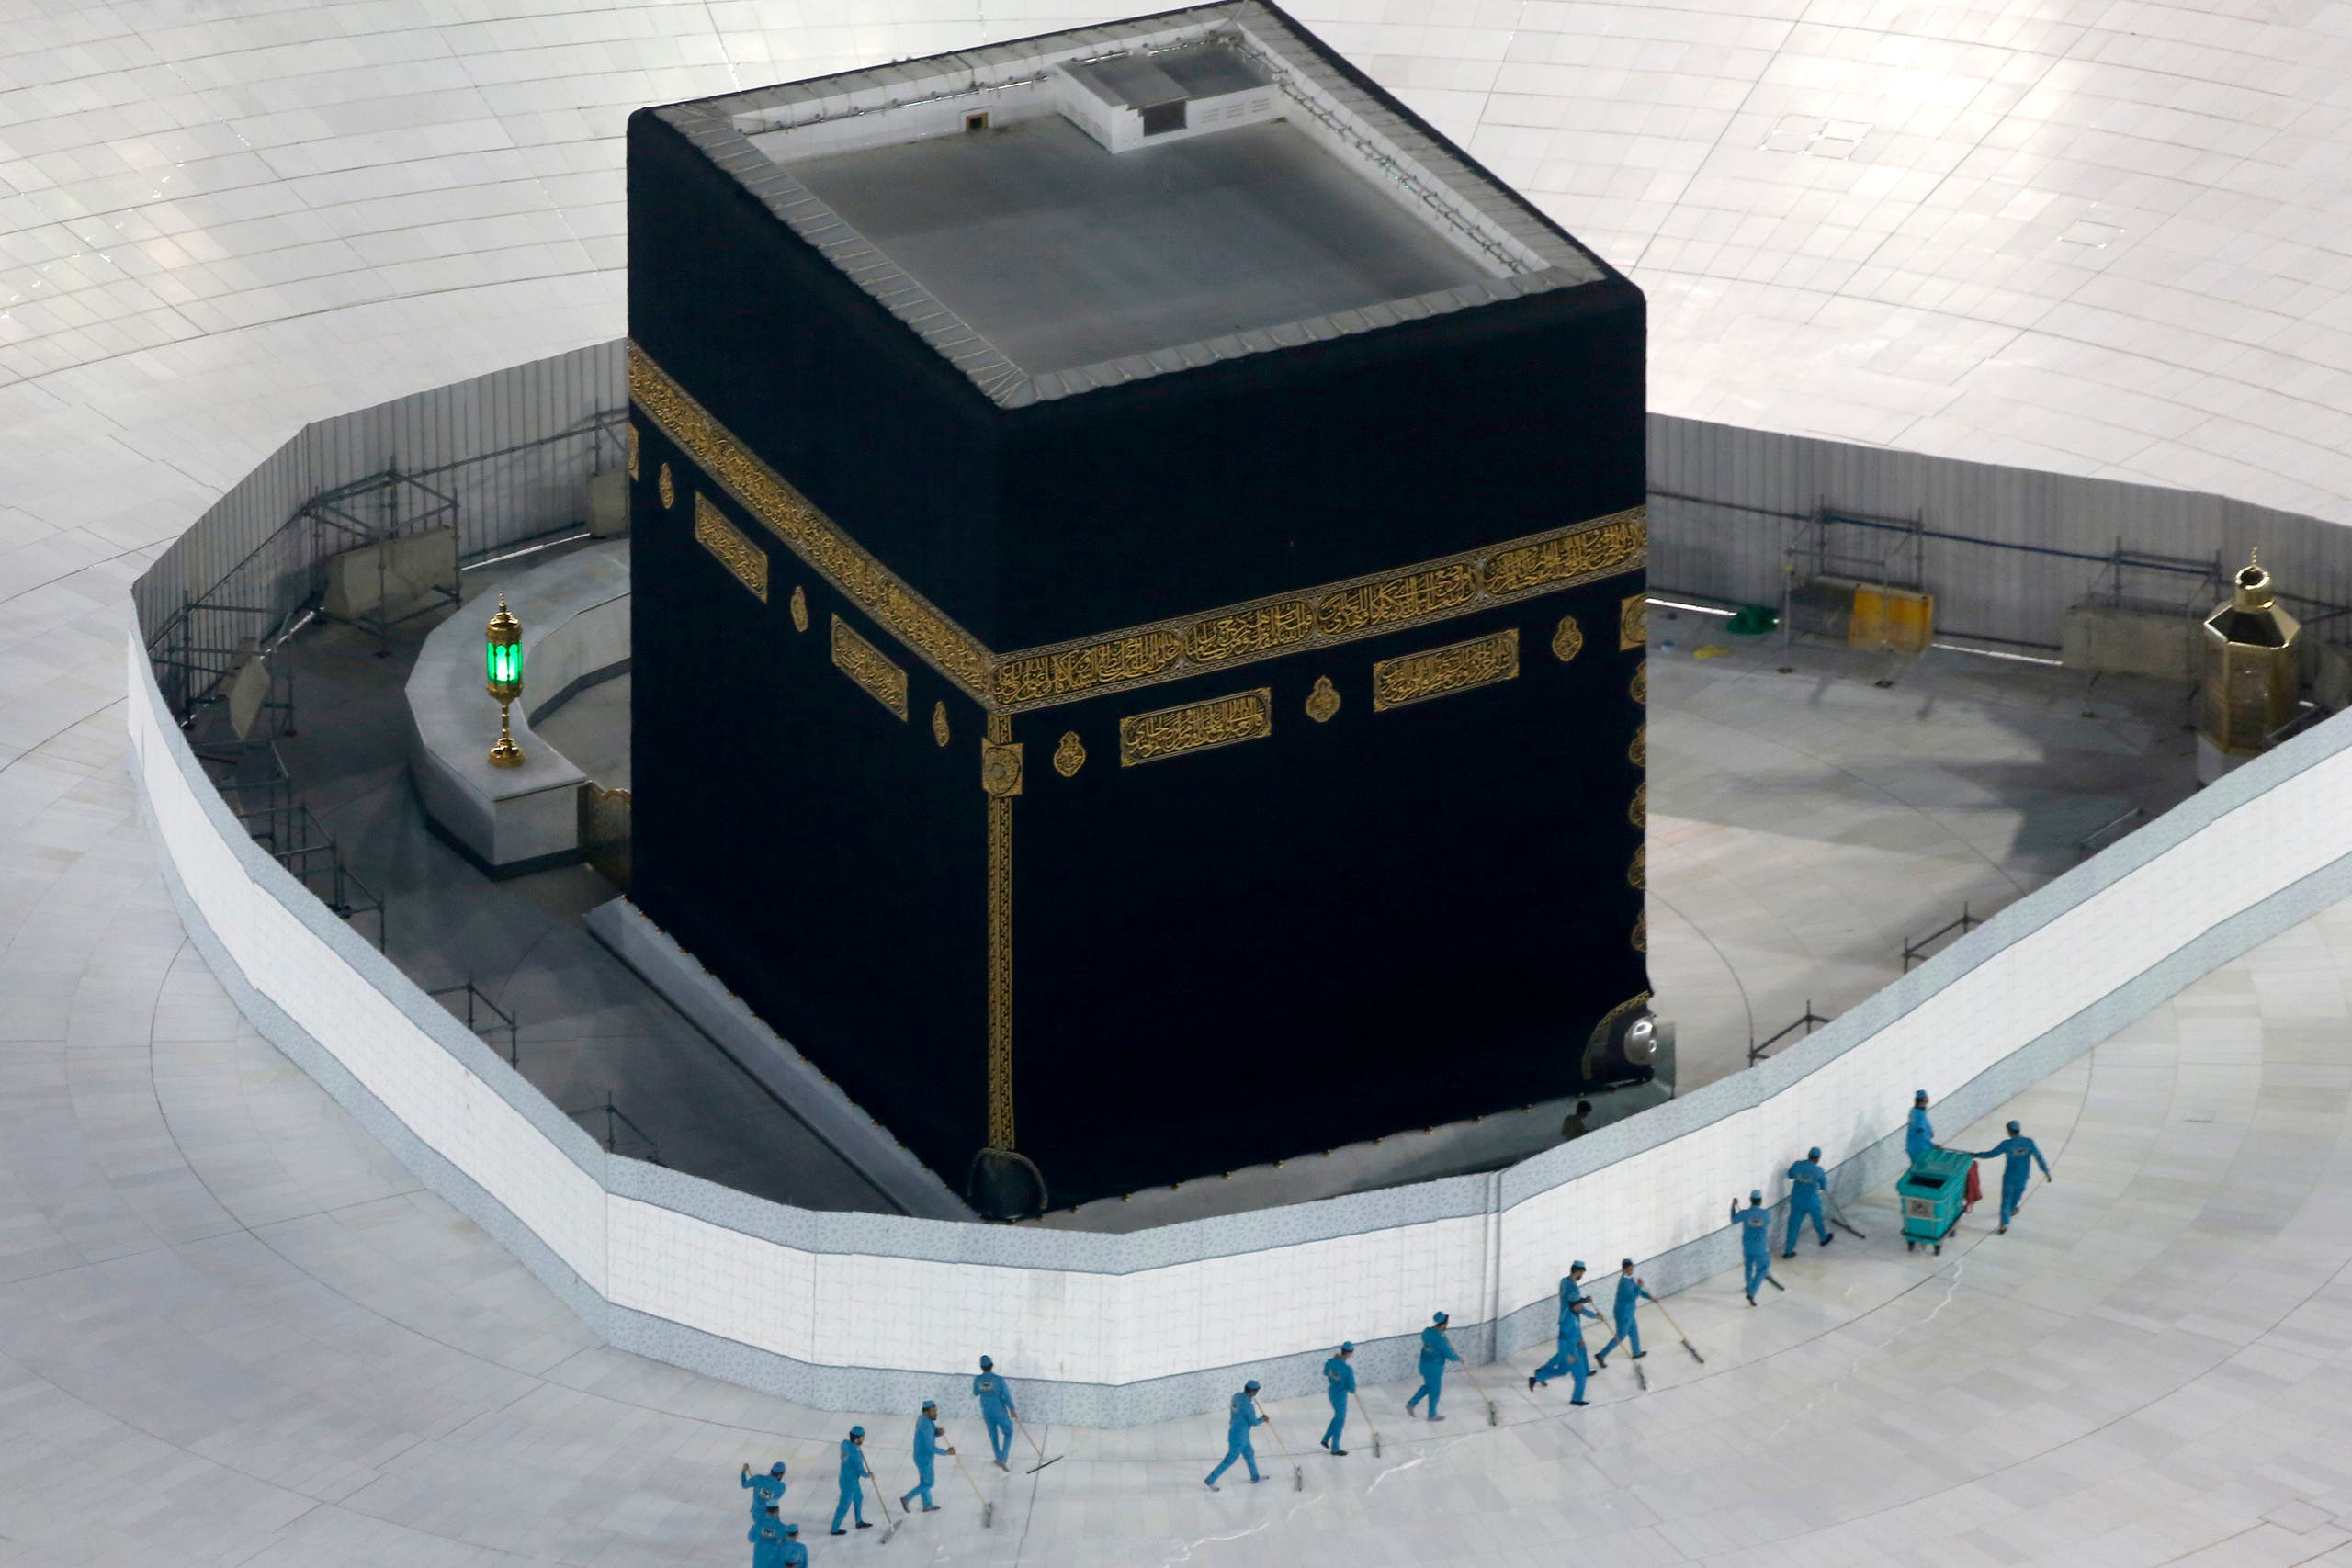 Workers disinfect the ground around the Kaaba, the cubic building at the Grand Mosque, in the Muslim holy city of Mecca, Saudi Arabia, Saturday, March 7, 2020. (AP)